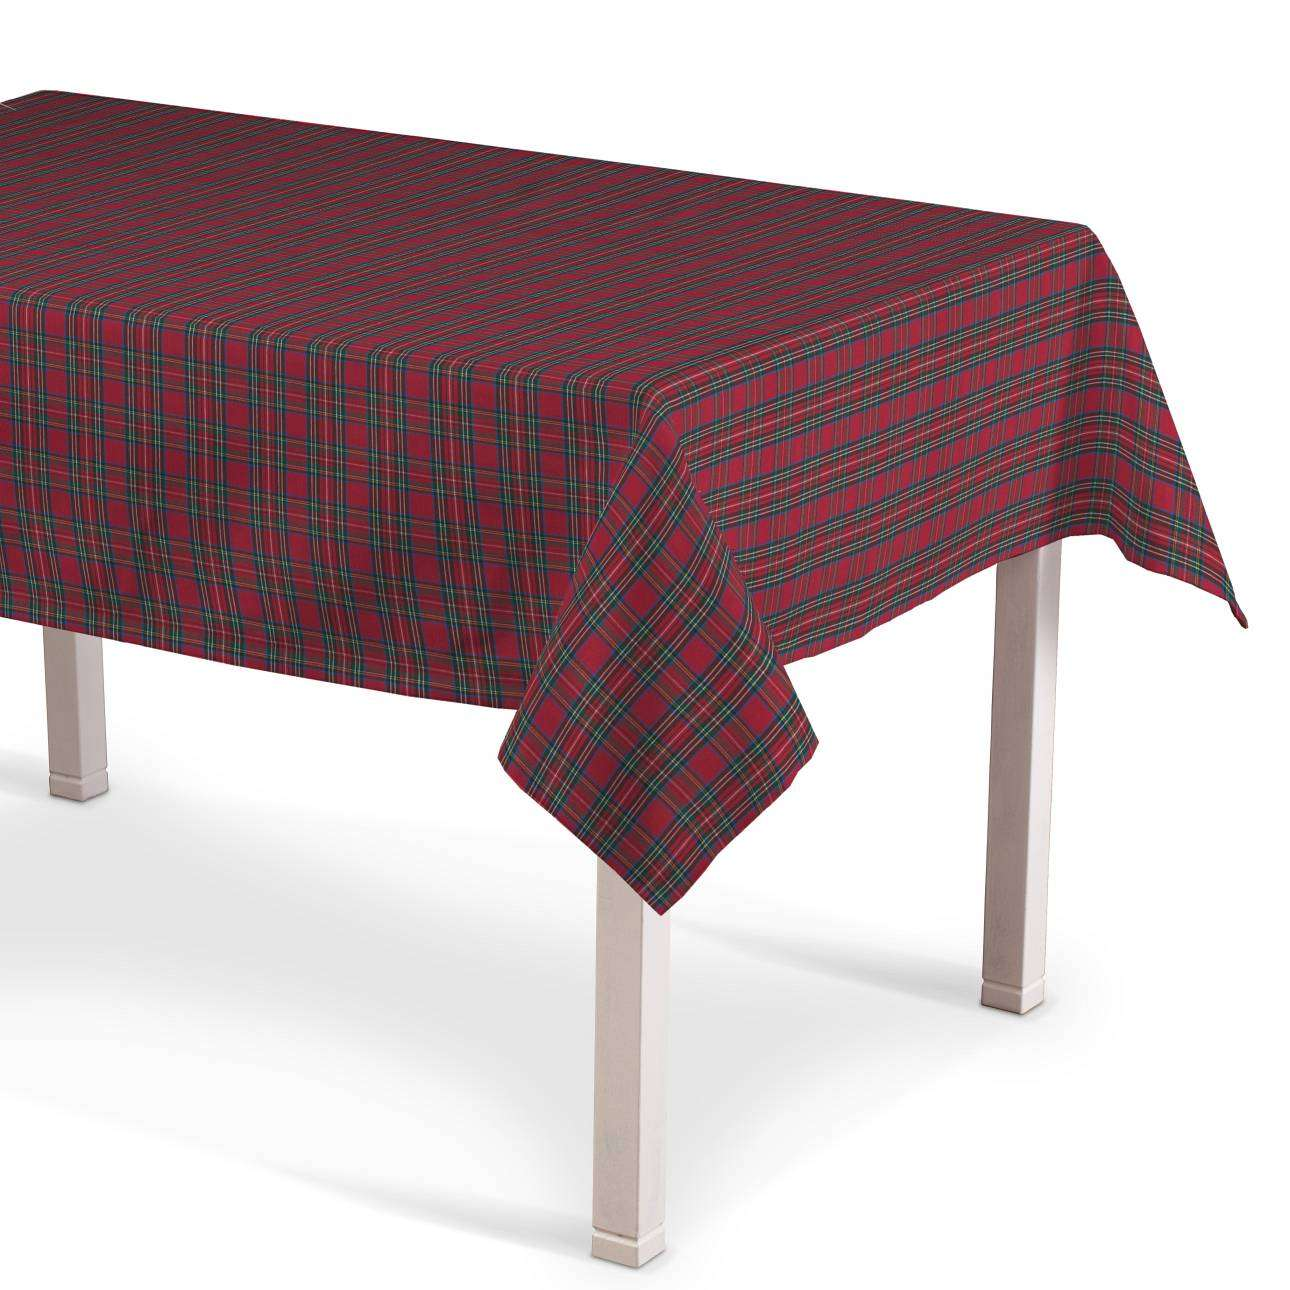 Rectangular tablecloth 130 x 130 cm (51 x51 inch) in collection Bristol, fabric: 126-29